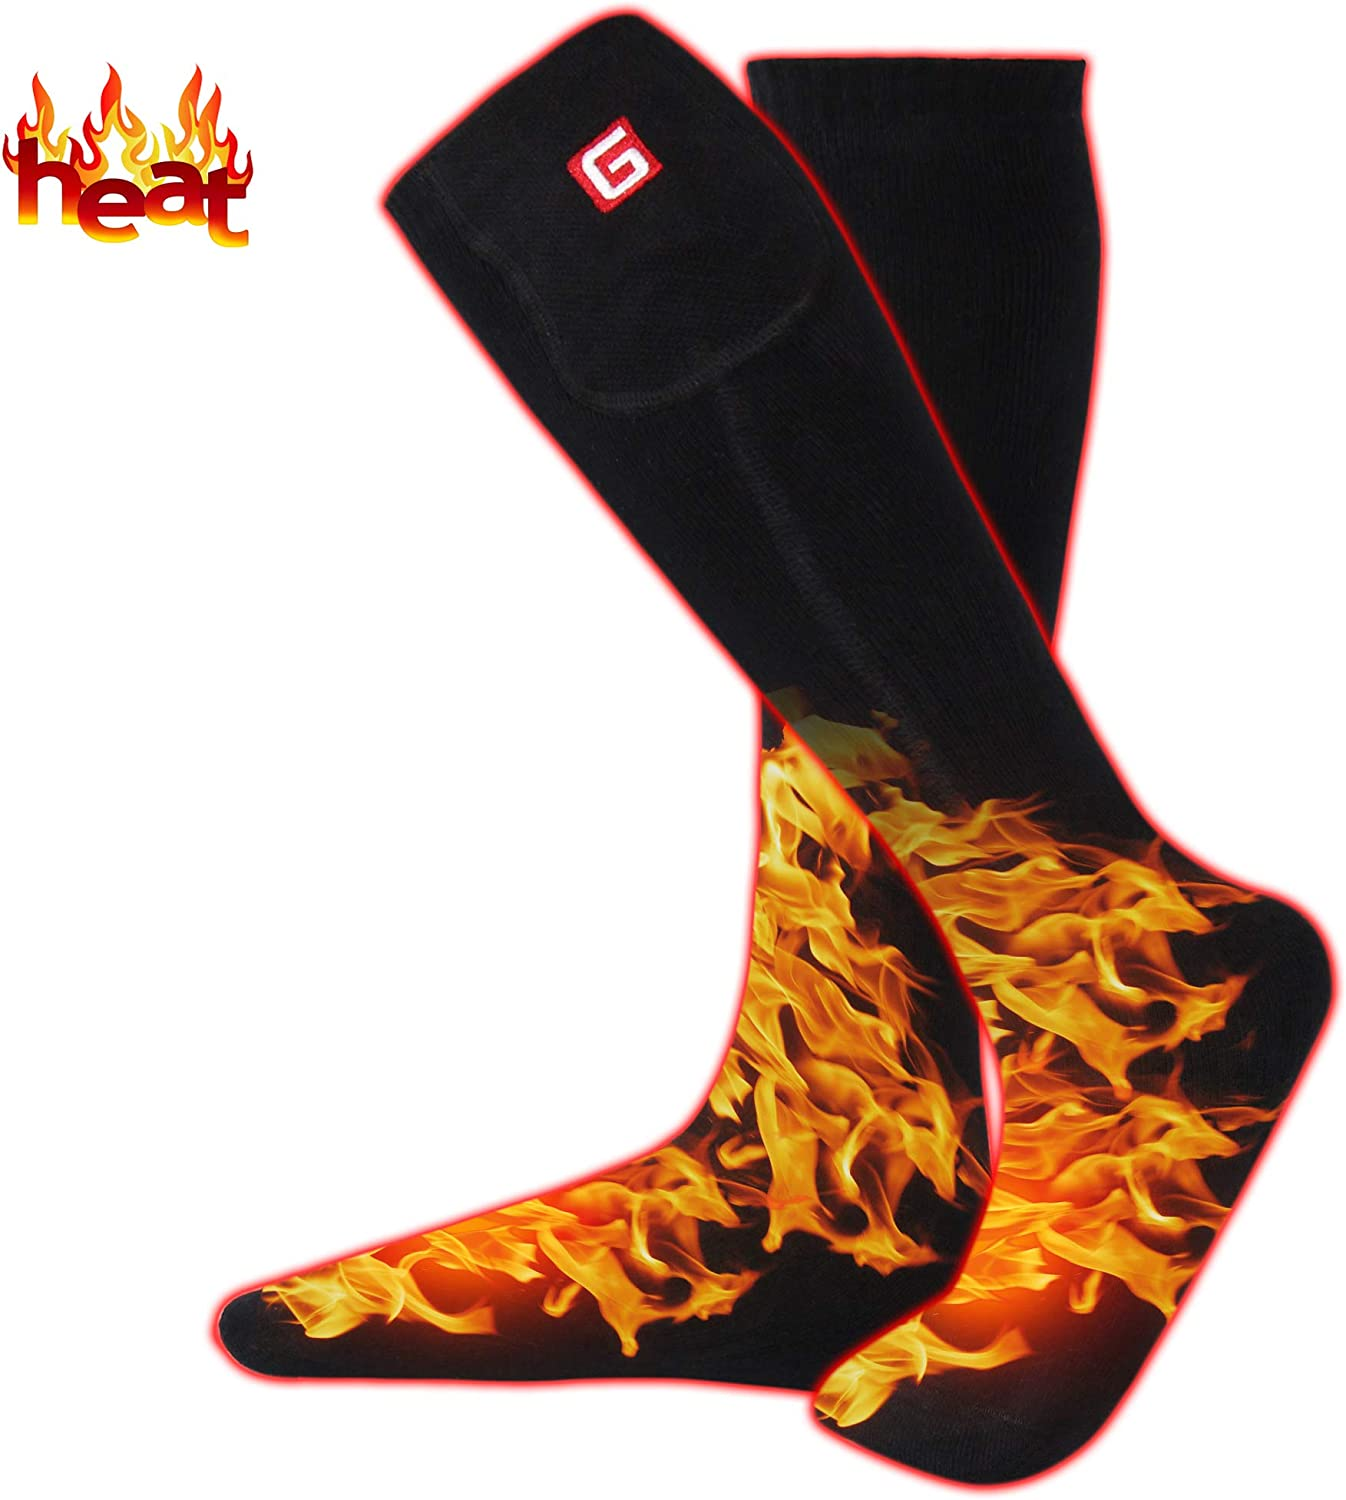 Rechargeable Battery Heated Socks Thick Knitting 3.7V Electric Heated Socks,Winter Unisex Socks Ideal Gift for Men & Women Perfect for Fishing Hiking Sleeping Free Size